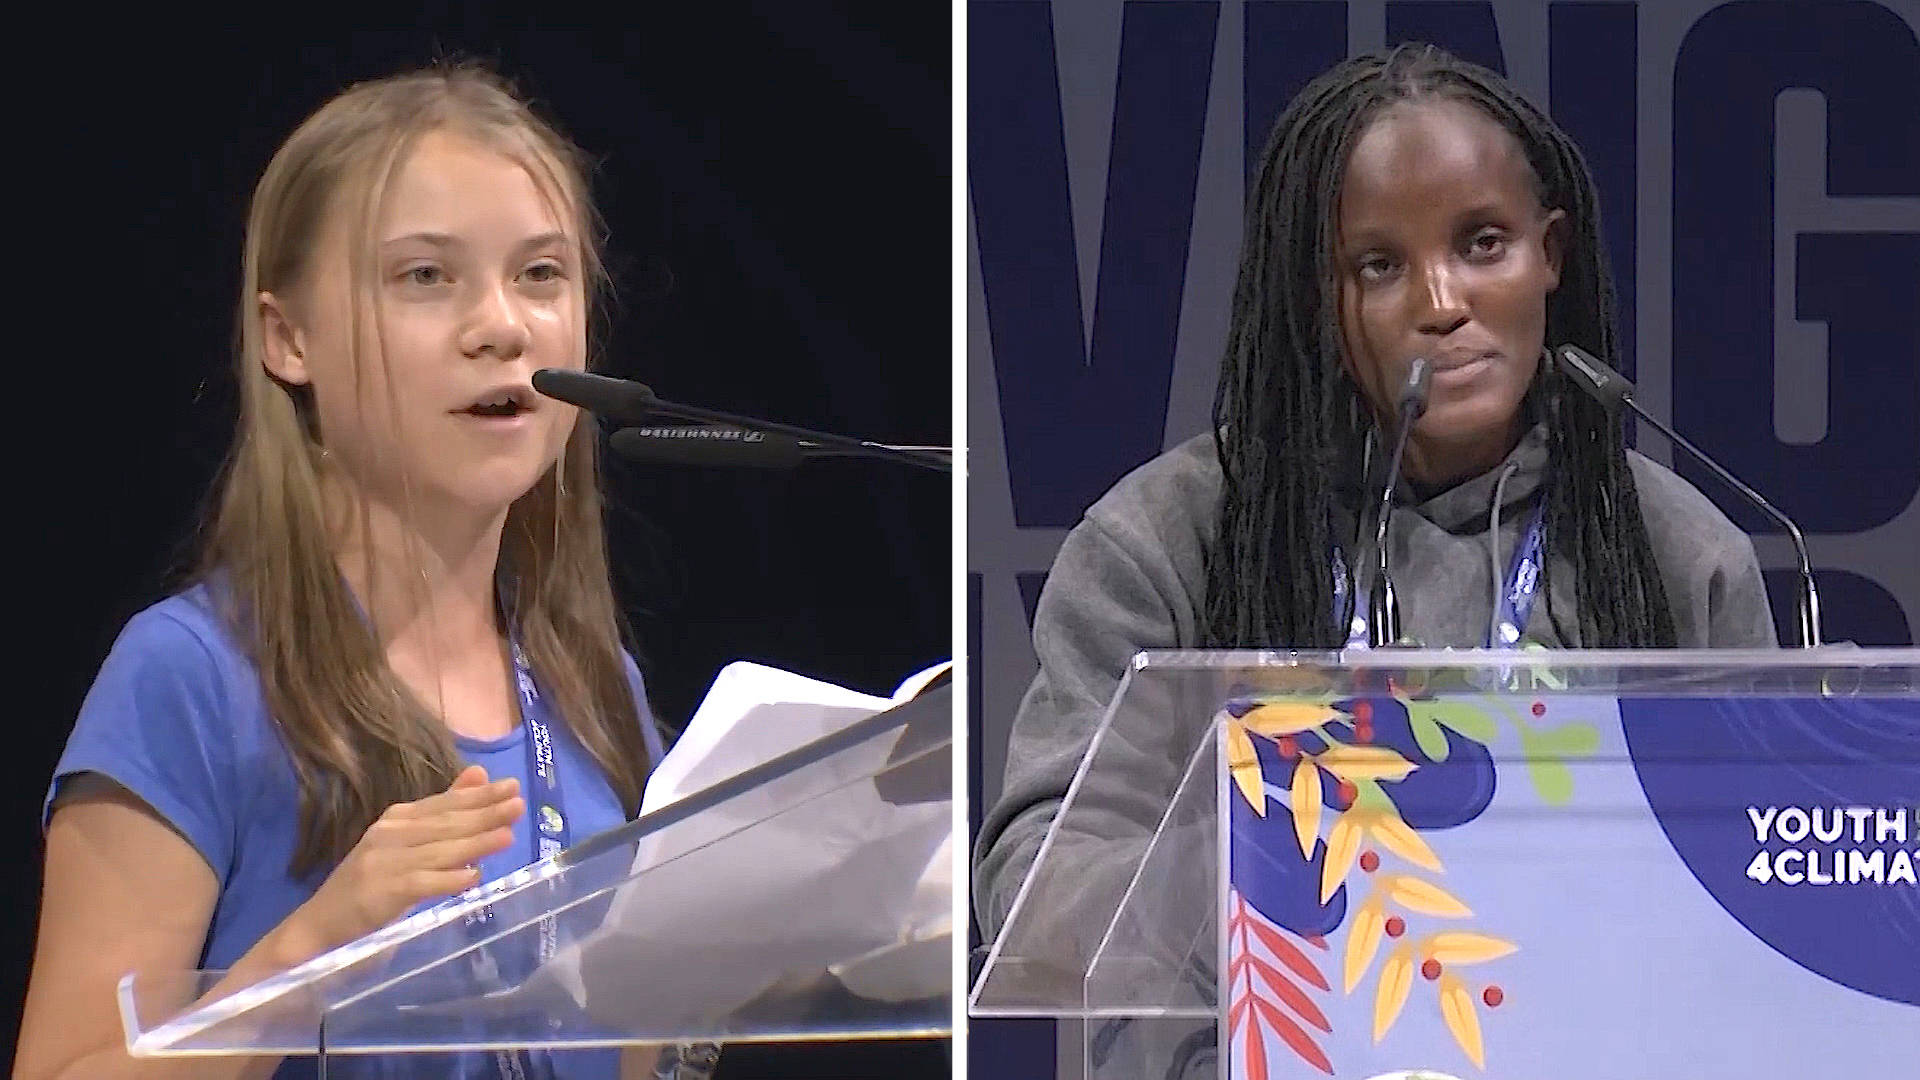 """Read more about the article """"Blah, Blah, Blah"""": Youth Climate Activists Slam Political Inaction at U.N. Summit Ahead of COP26"""